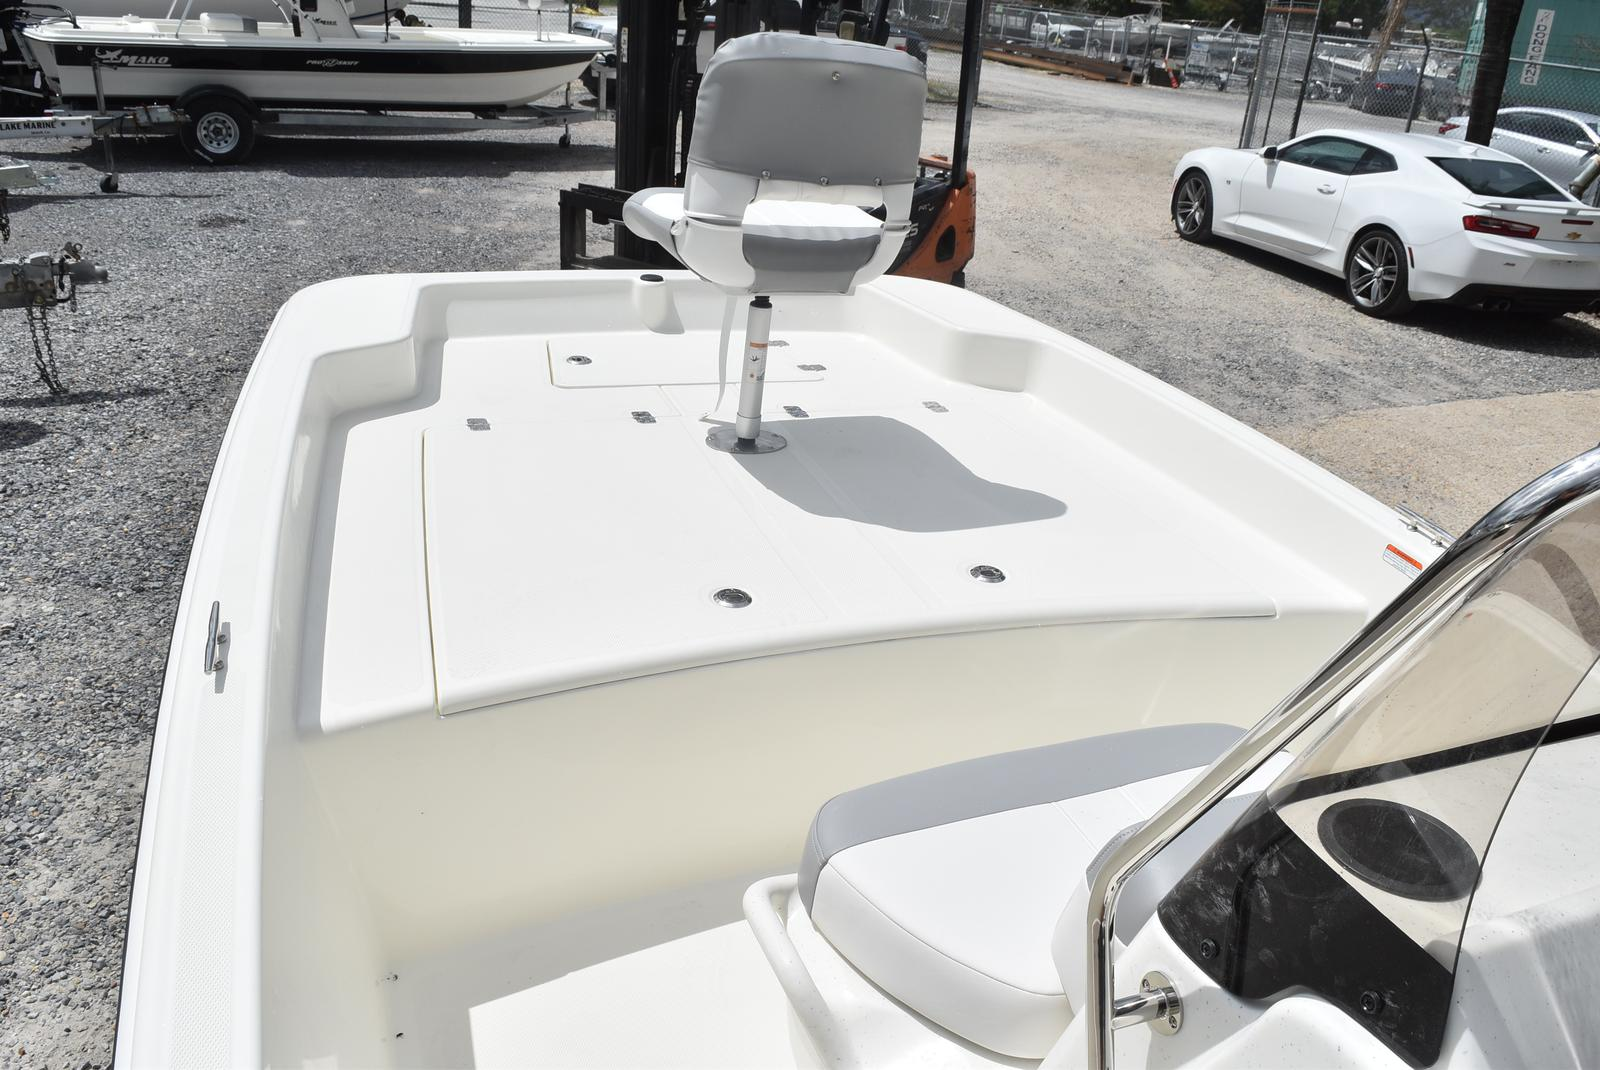 2020 Mako boat for sale, model of the boat is Pro Skiff 17, 75 ELPT & Image # 402 of 702